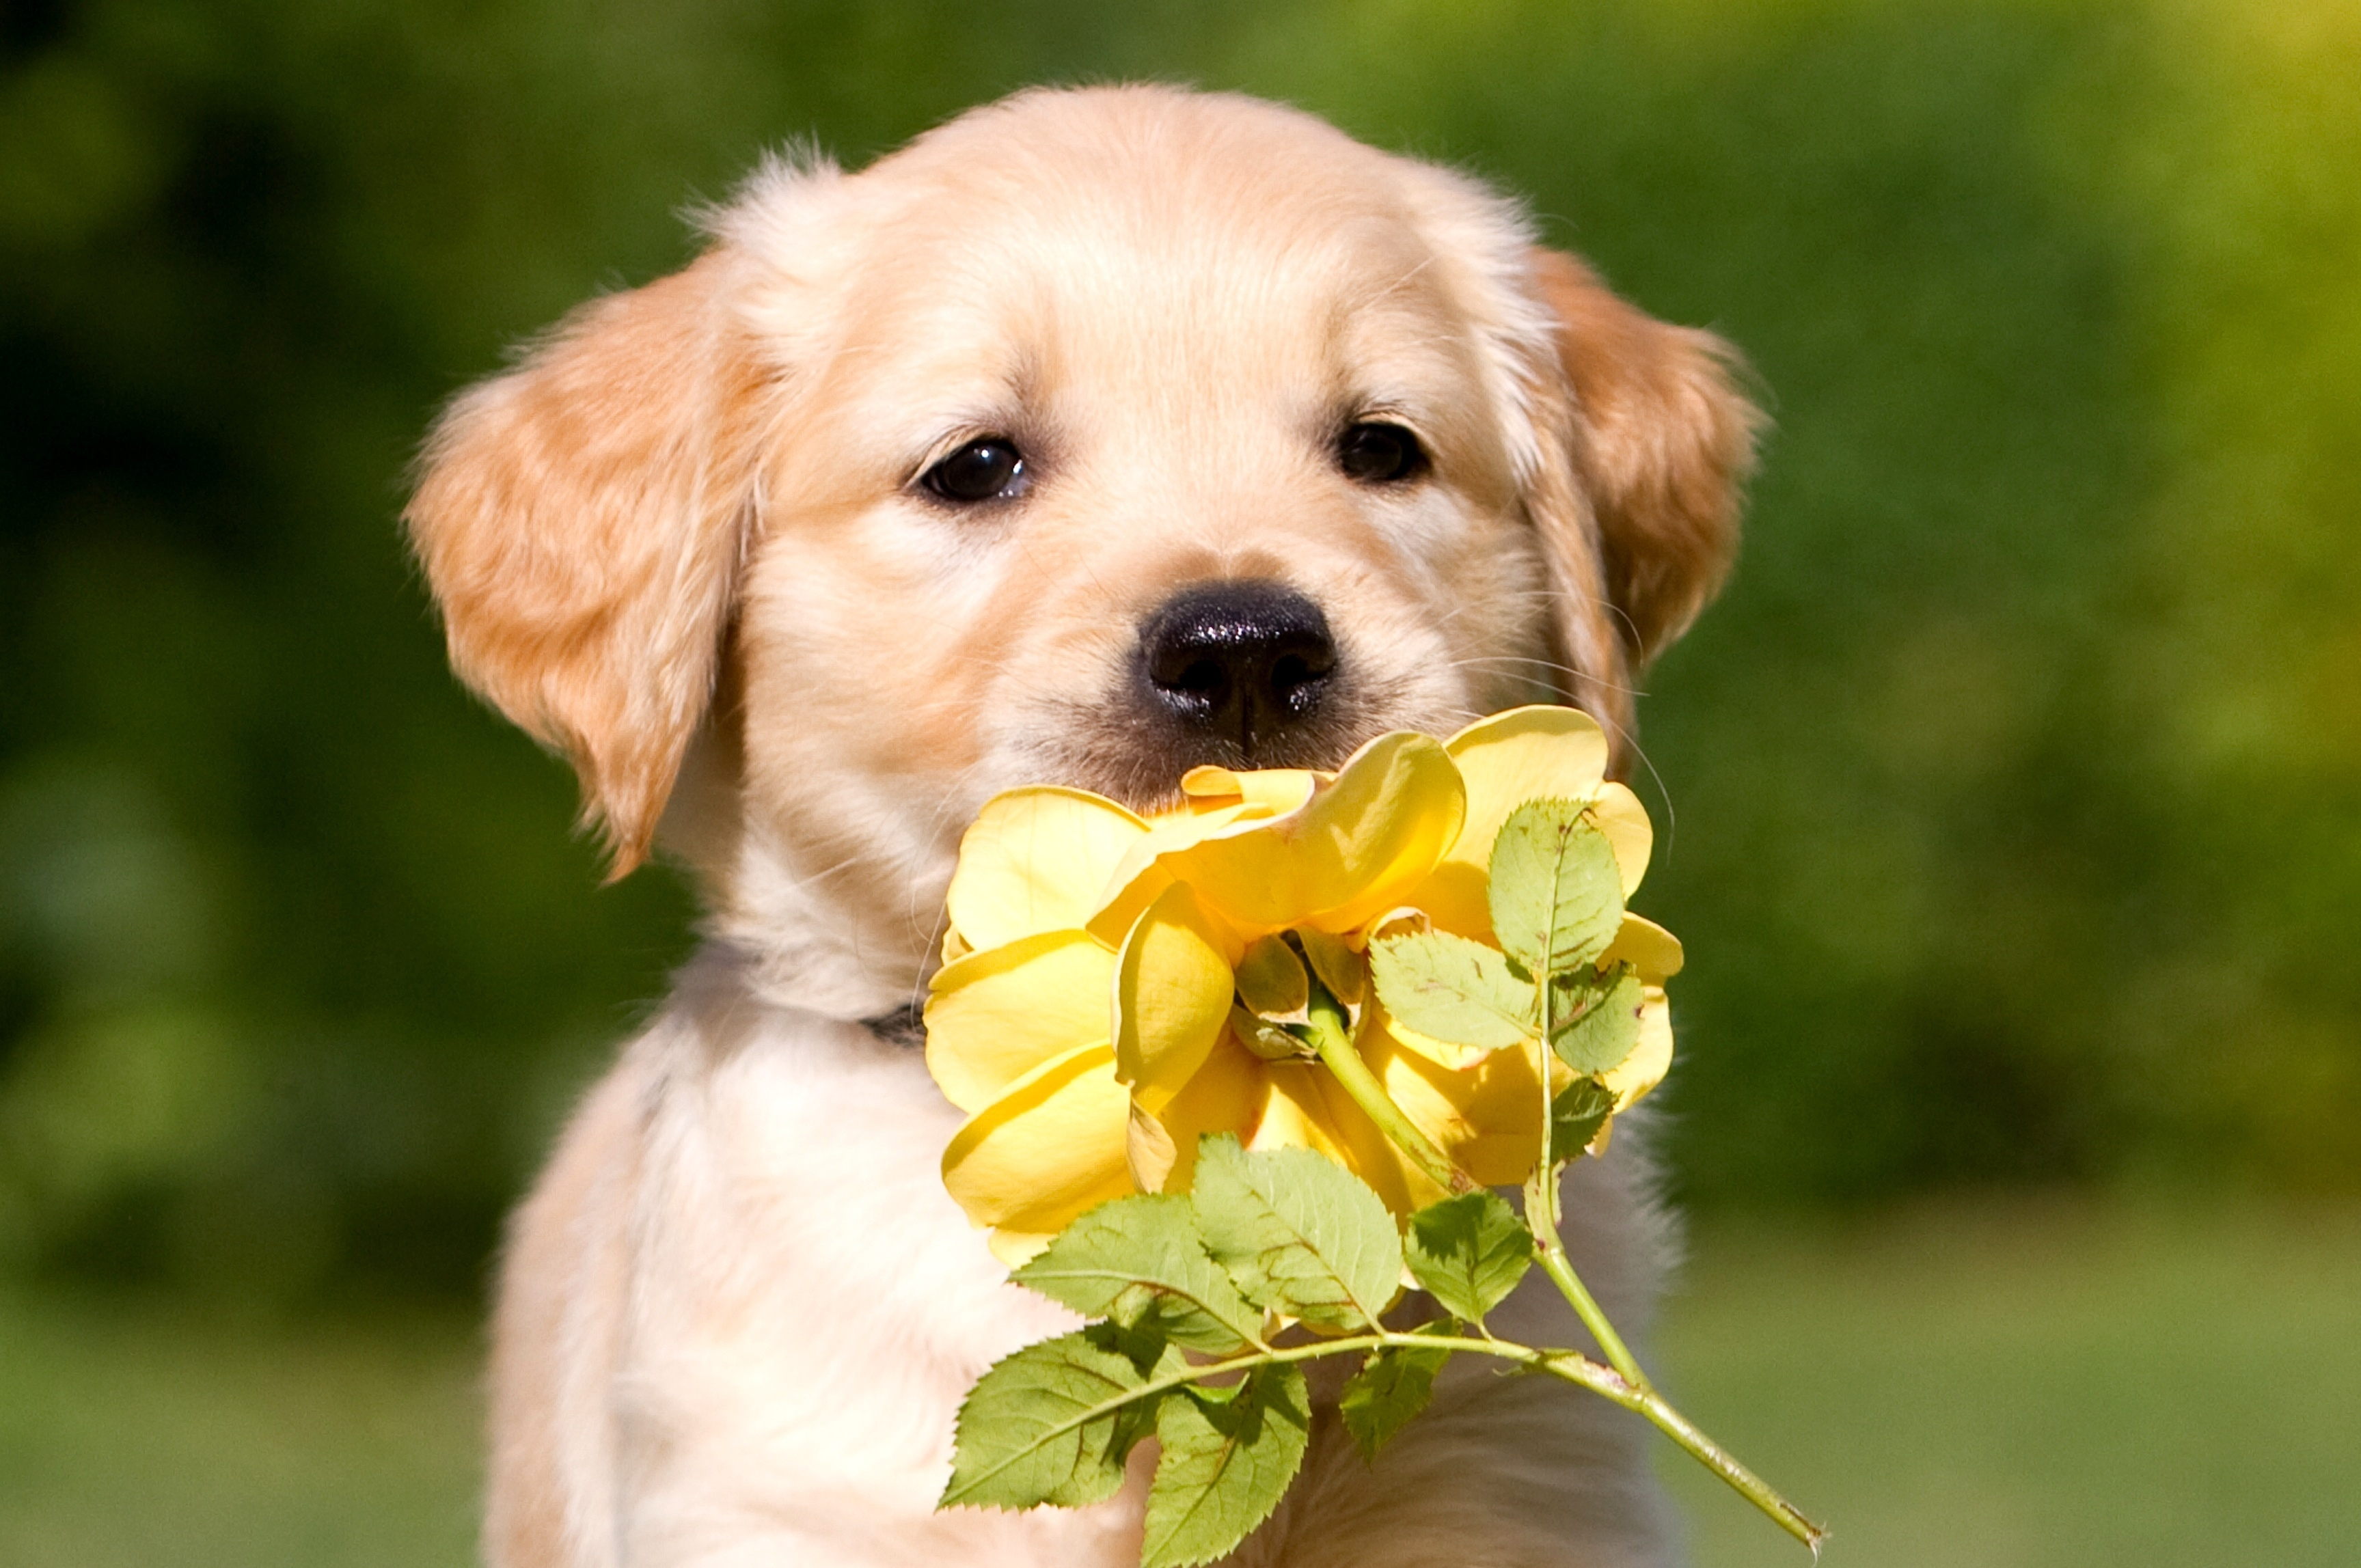 136007 Screensavers and Wallpapers Puppy for phone. Download Animals, Flower, Petals, Puppy, Retriever pictures for free